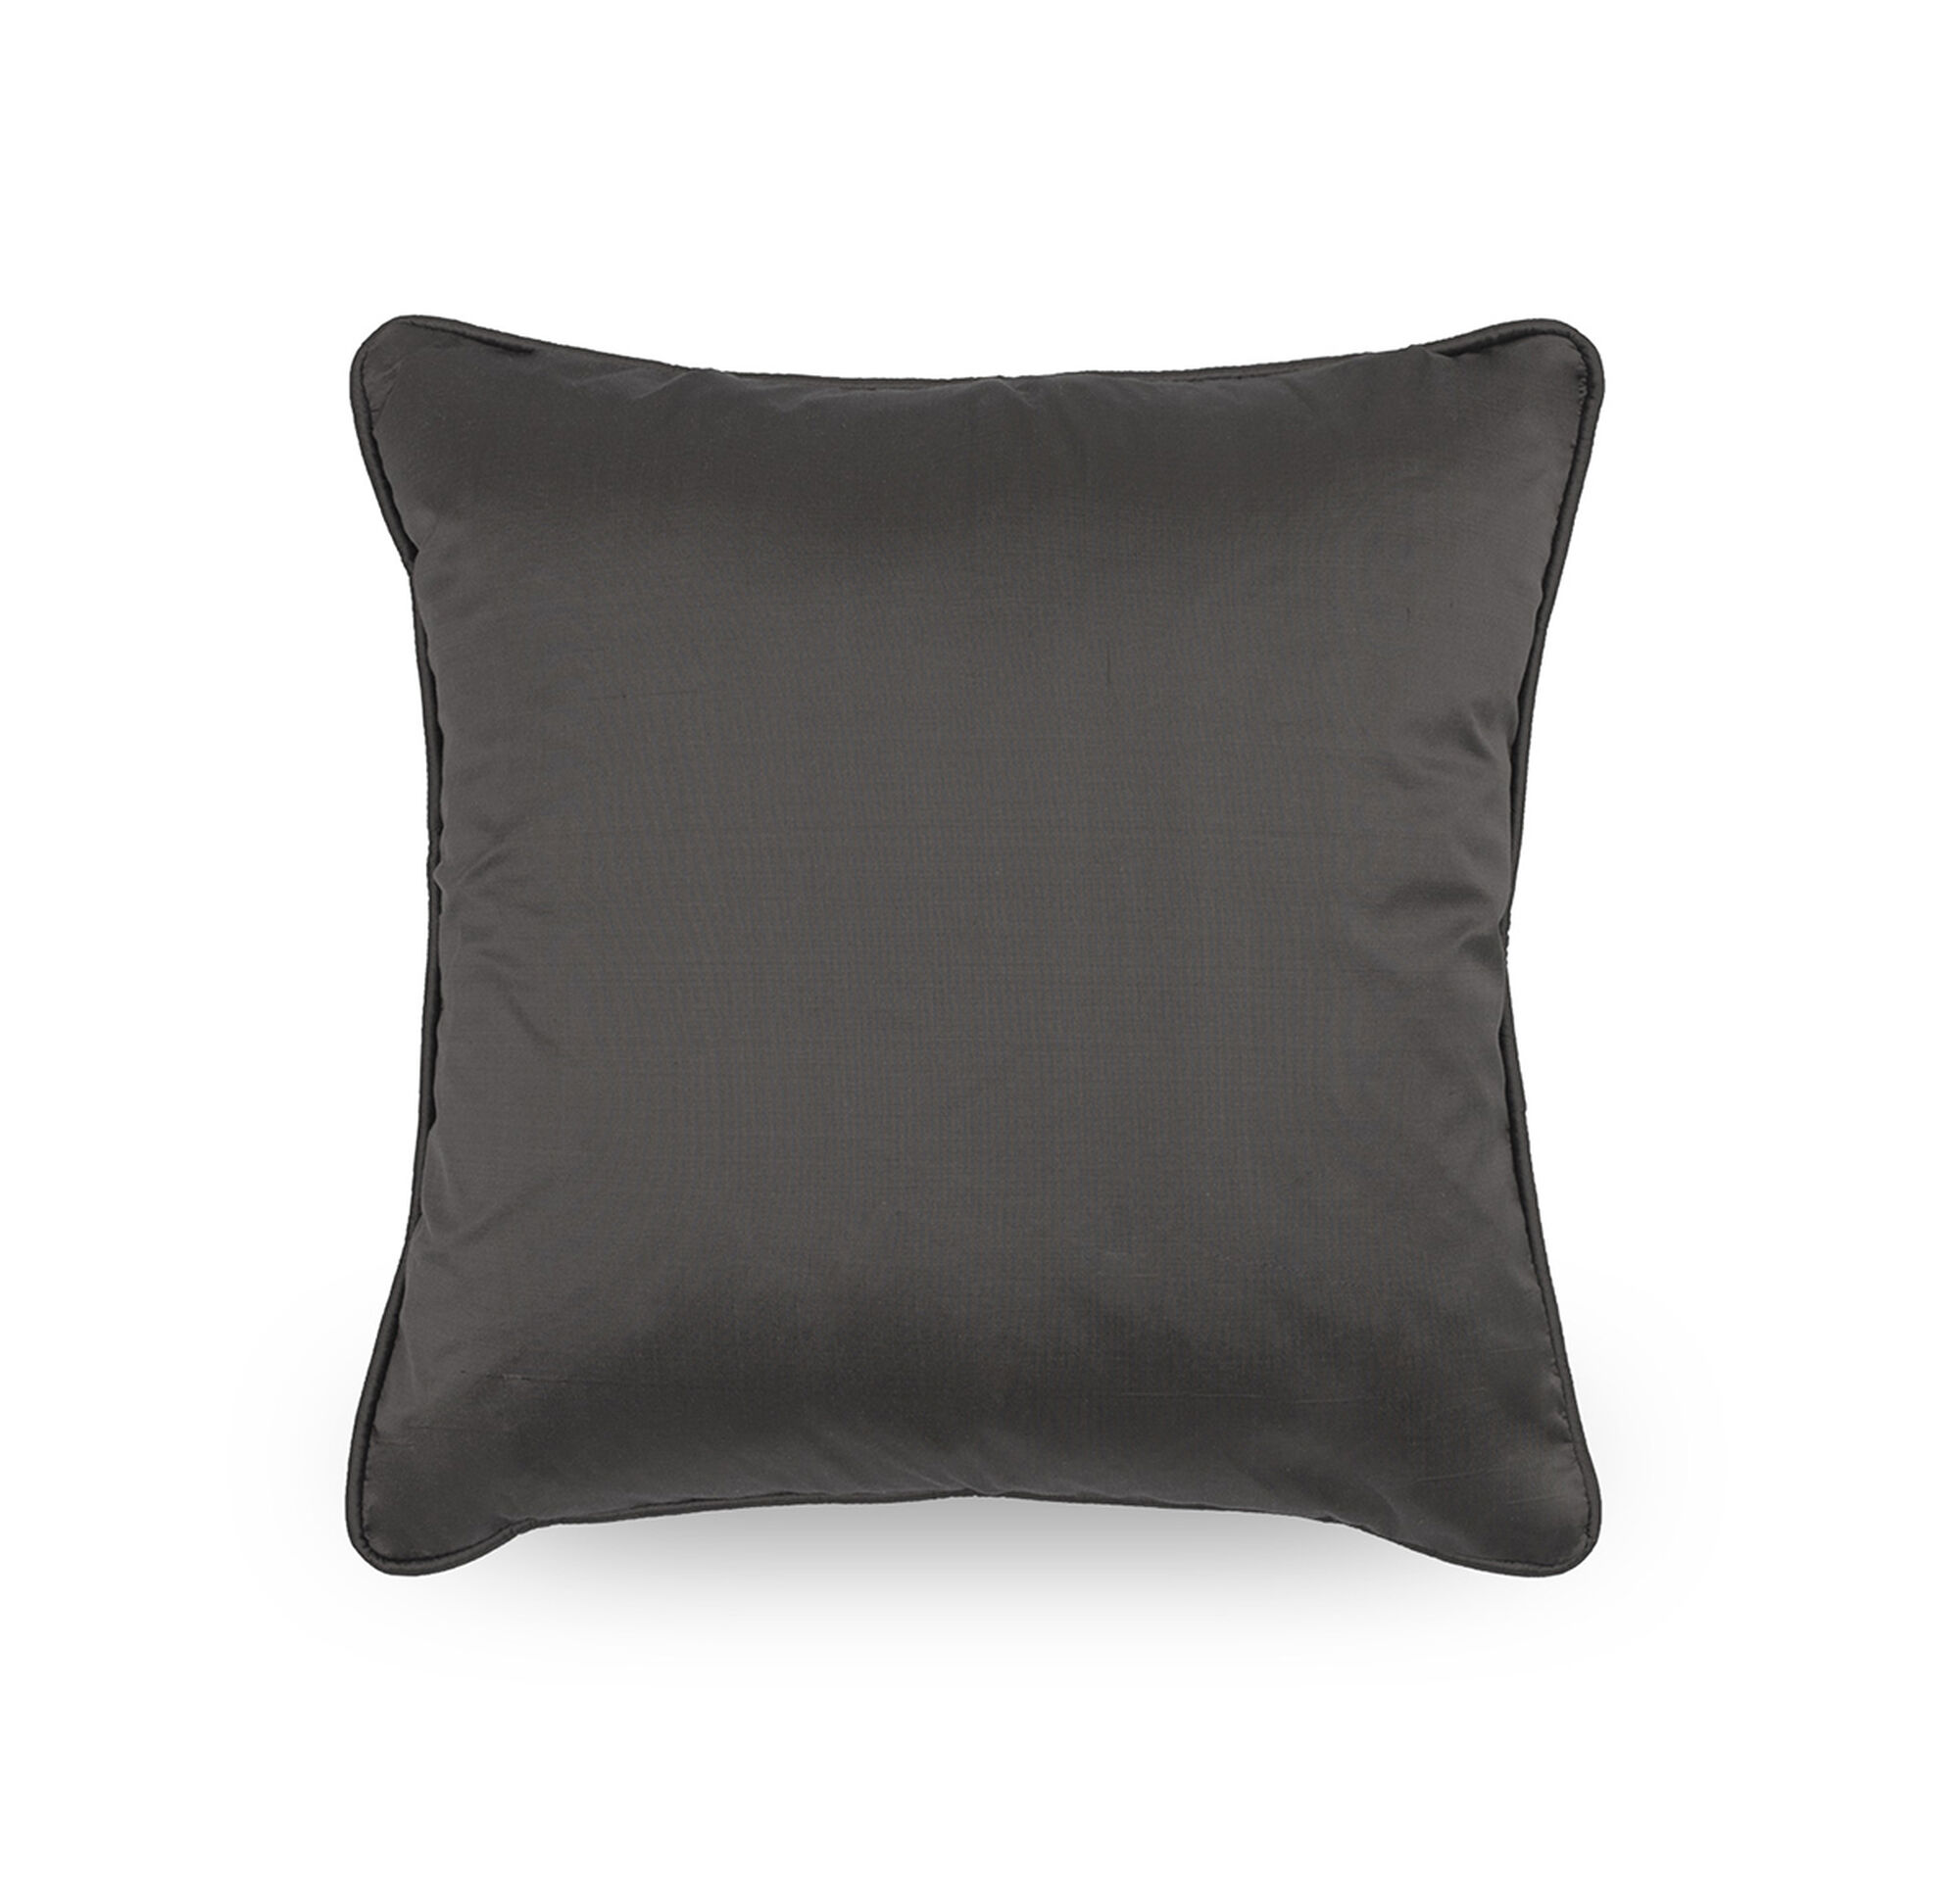 Throw Pillow Website : 17 IN. SQUARE THROW PILLOW